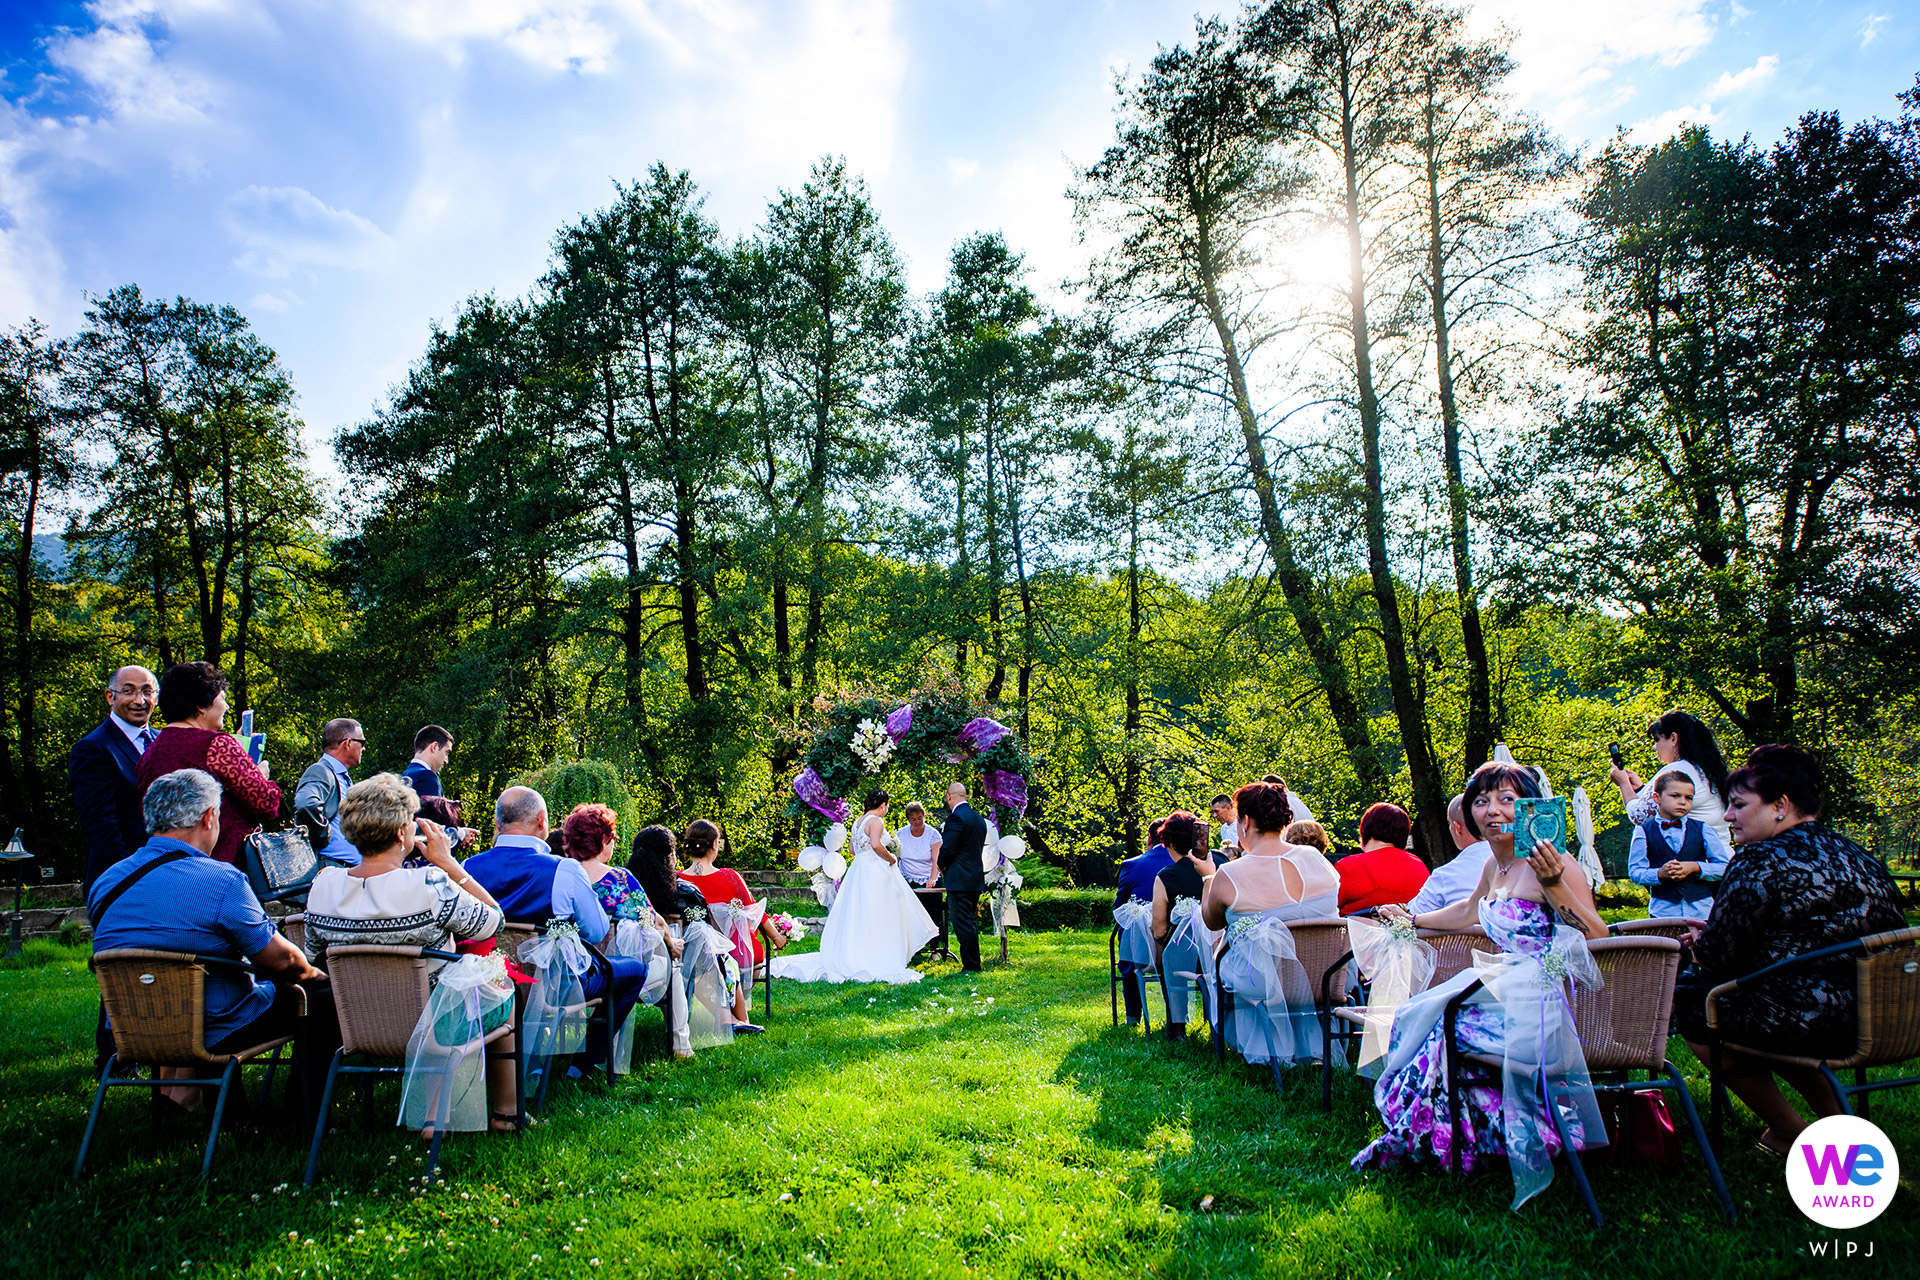 Ribaritsa, Bulgaria Elopement Photographer | the ceremony took place on a green lawn and surrounded by trees